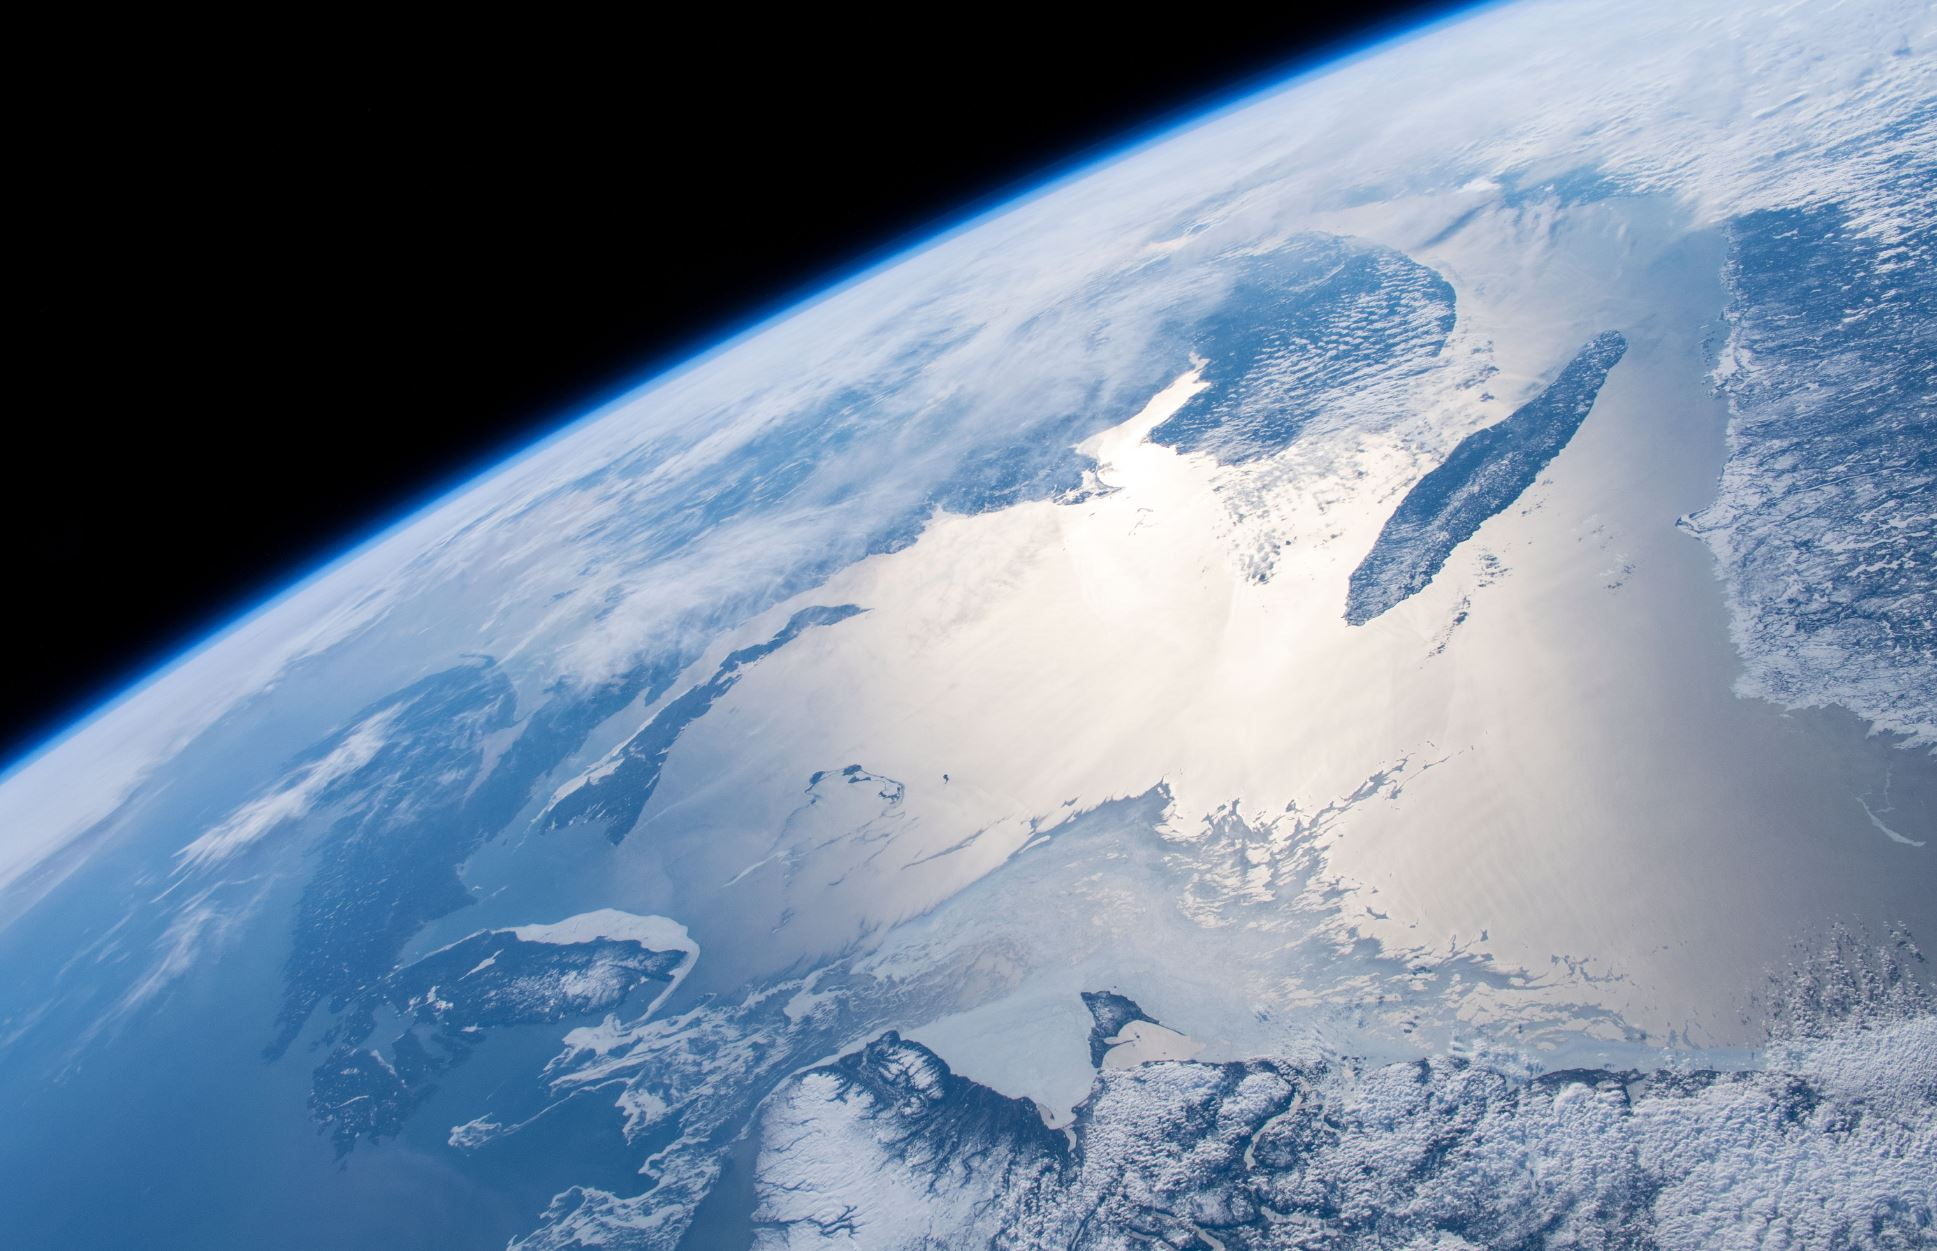 Earth's rather stunning ocean as seen from space - Image Credit: NASA